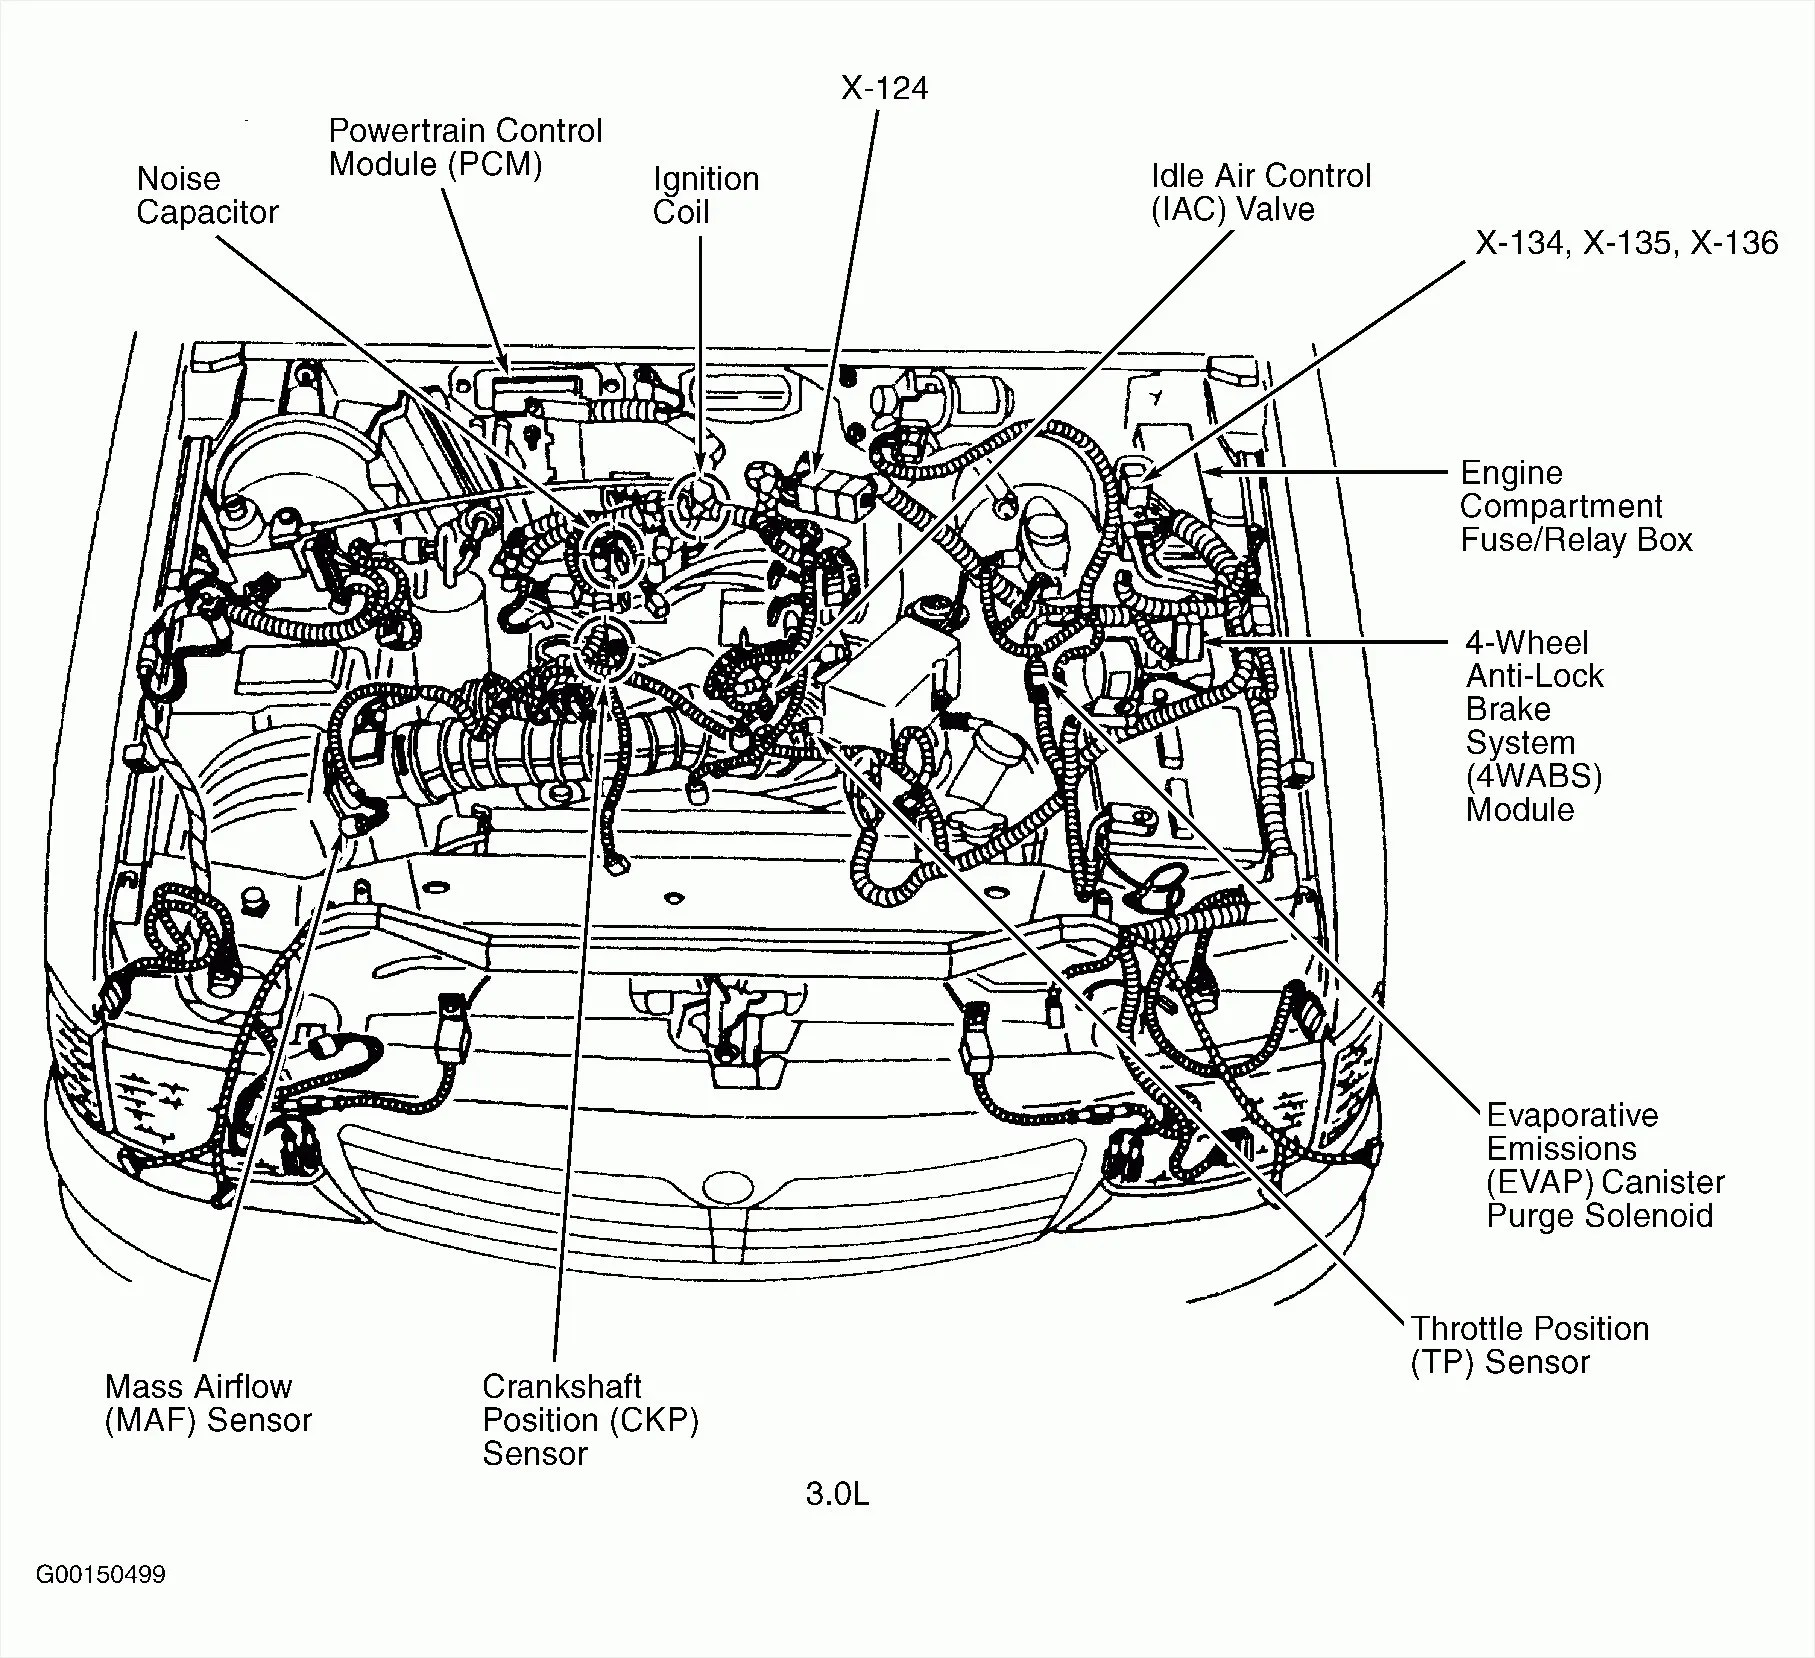 hight resolution of 1992 corvette engine compartment diagram wiring diagram list 1992 corvette engine diagram